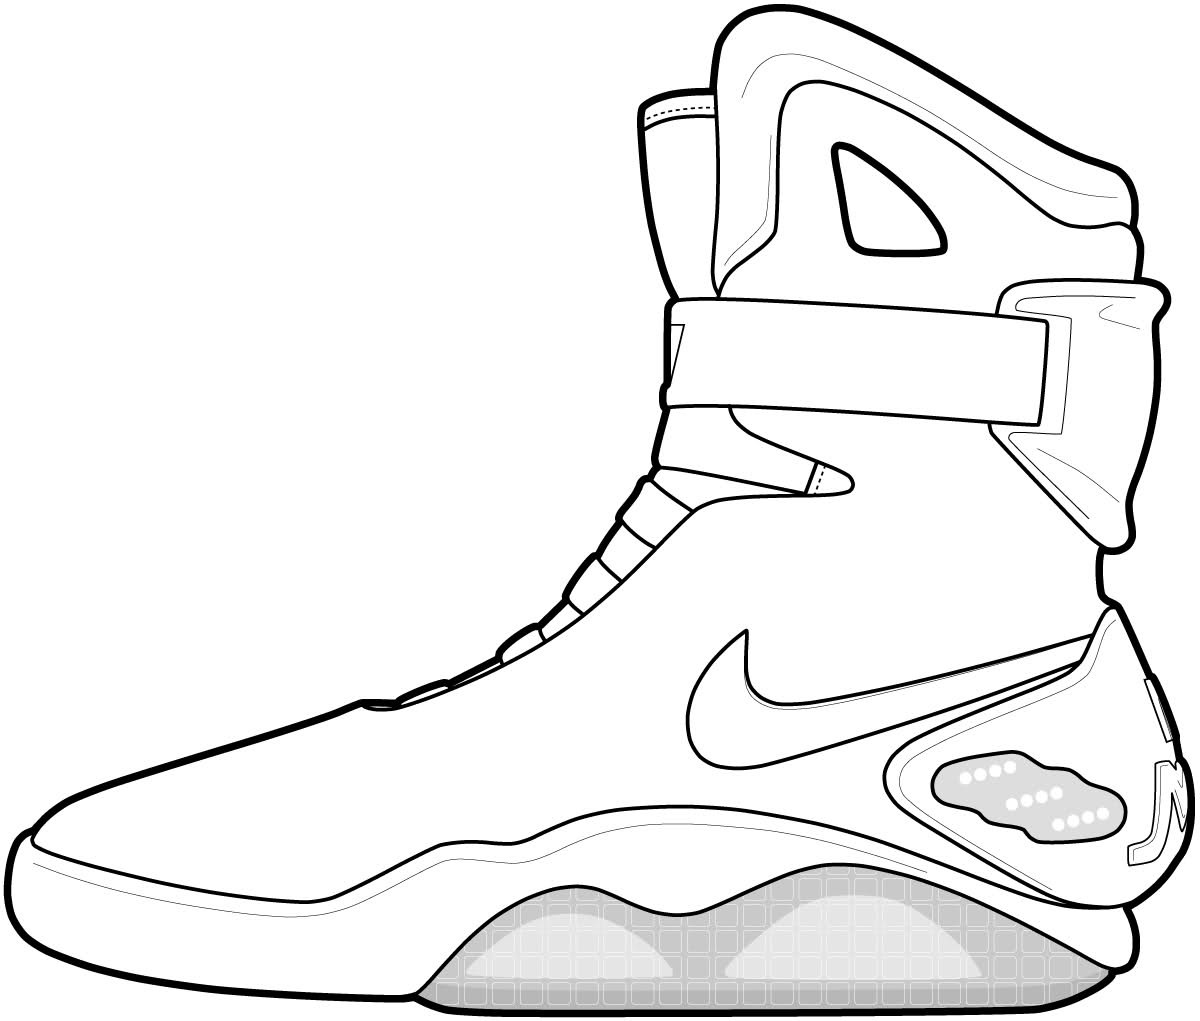 Jordan 11 Drawing at GetDrawings.com | Free for personal use Jordan 11 ...